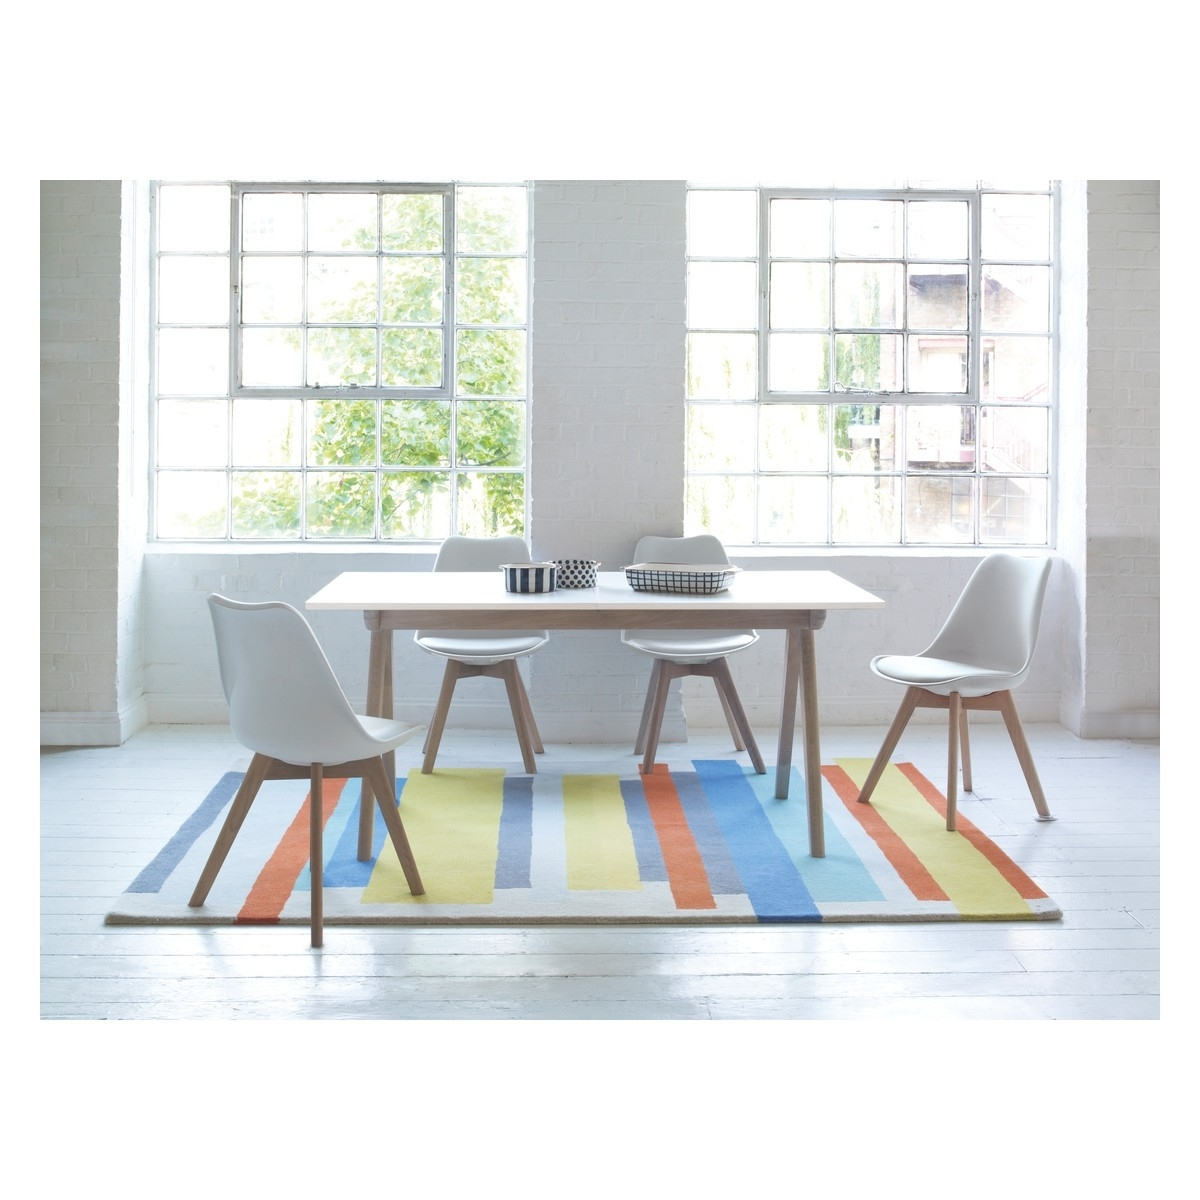 Buy Regarding Extendable Oak Dining Tables And Chairs (View 6 of 25)